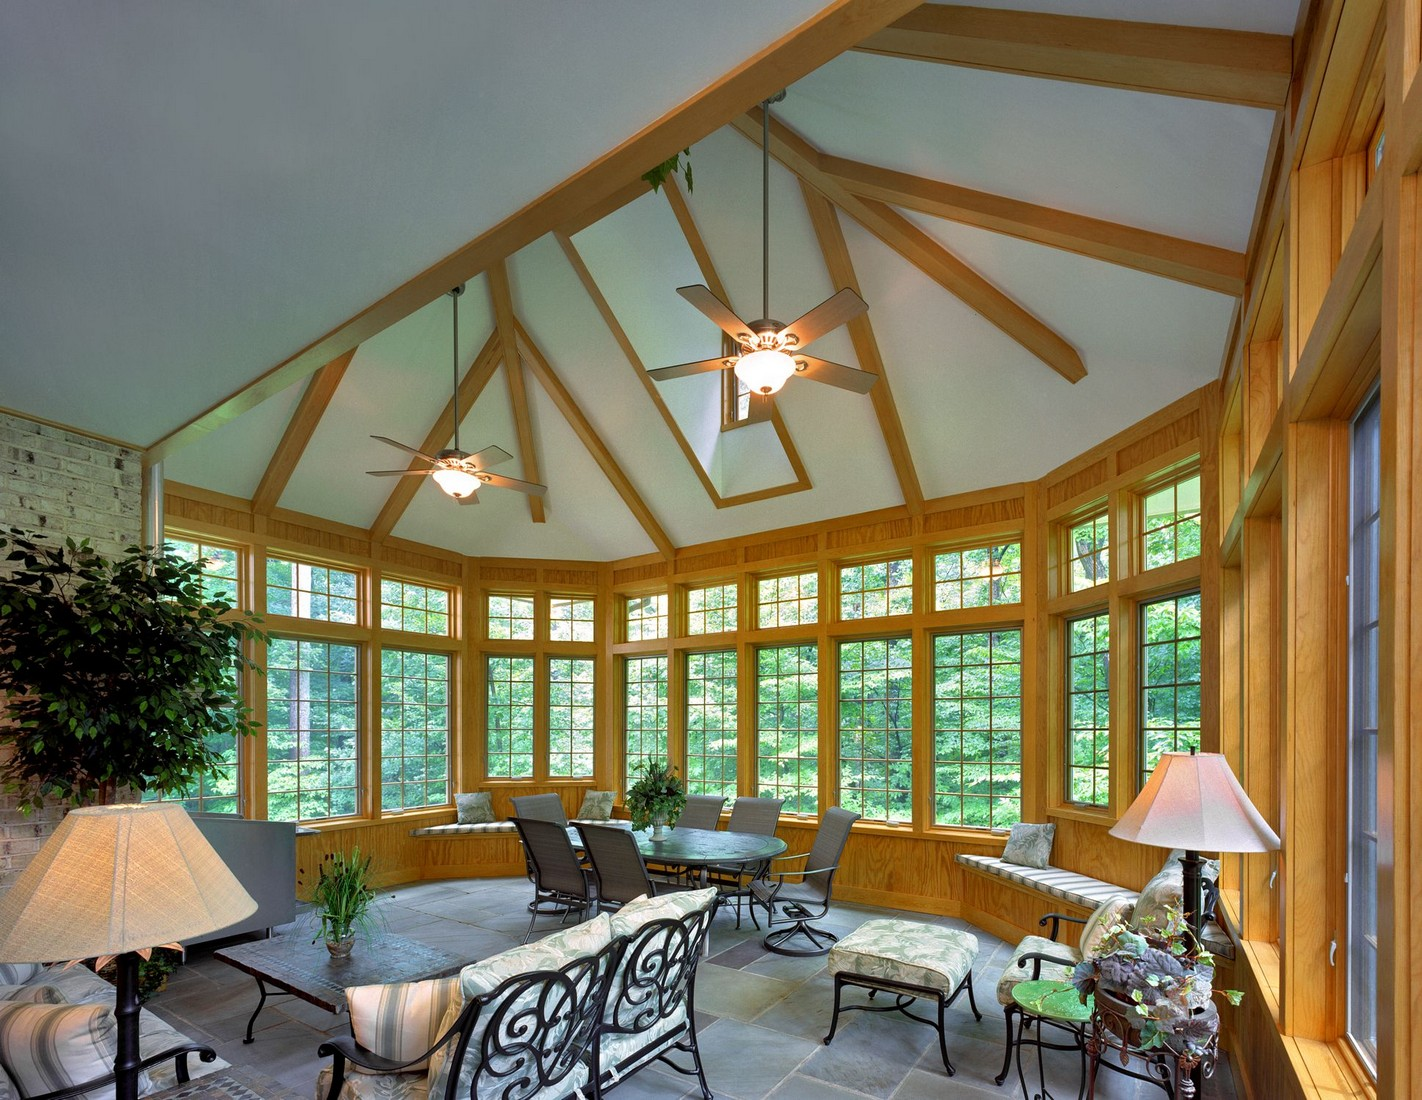 Awesome Potomac Maryland   Four Season Sunroom Addition   Interior Exterior  Remodeling   Y (5)